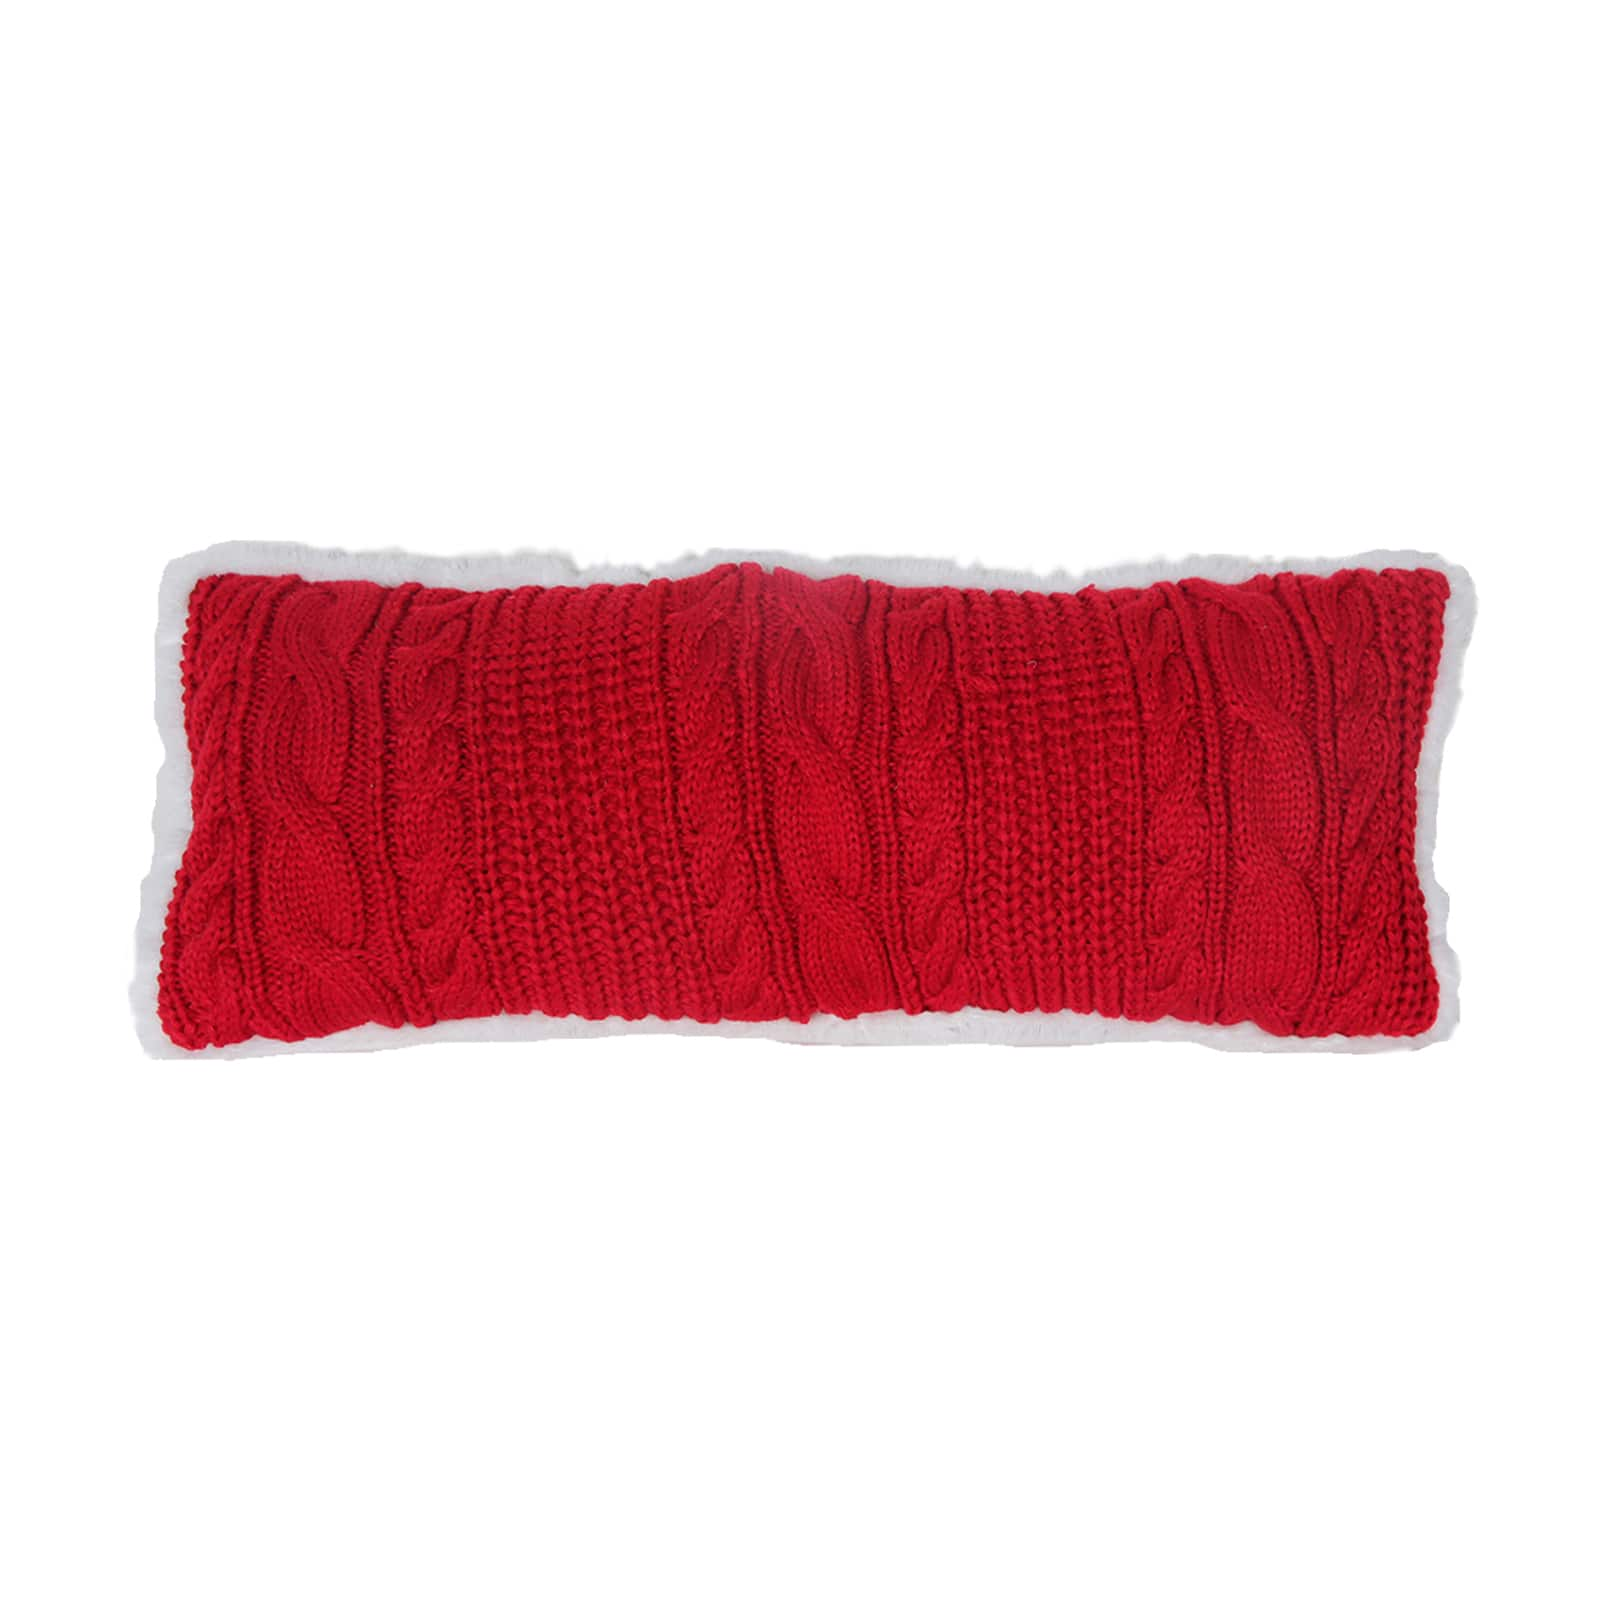 Red Cable Knit Lumbar Pillow By Ashland